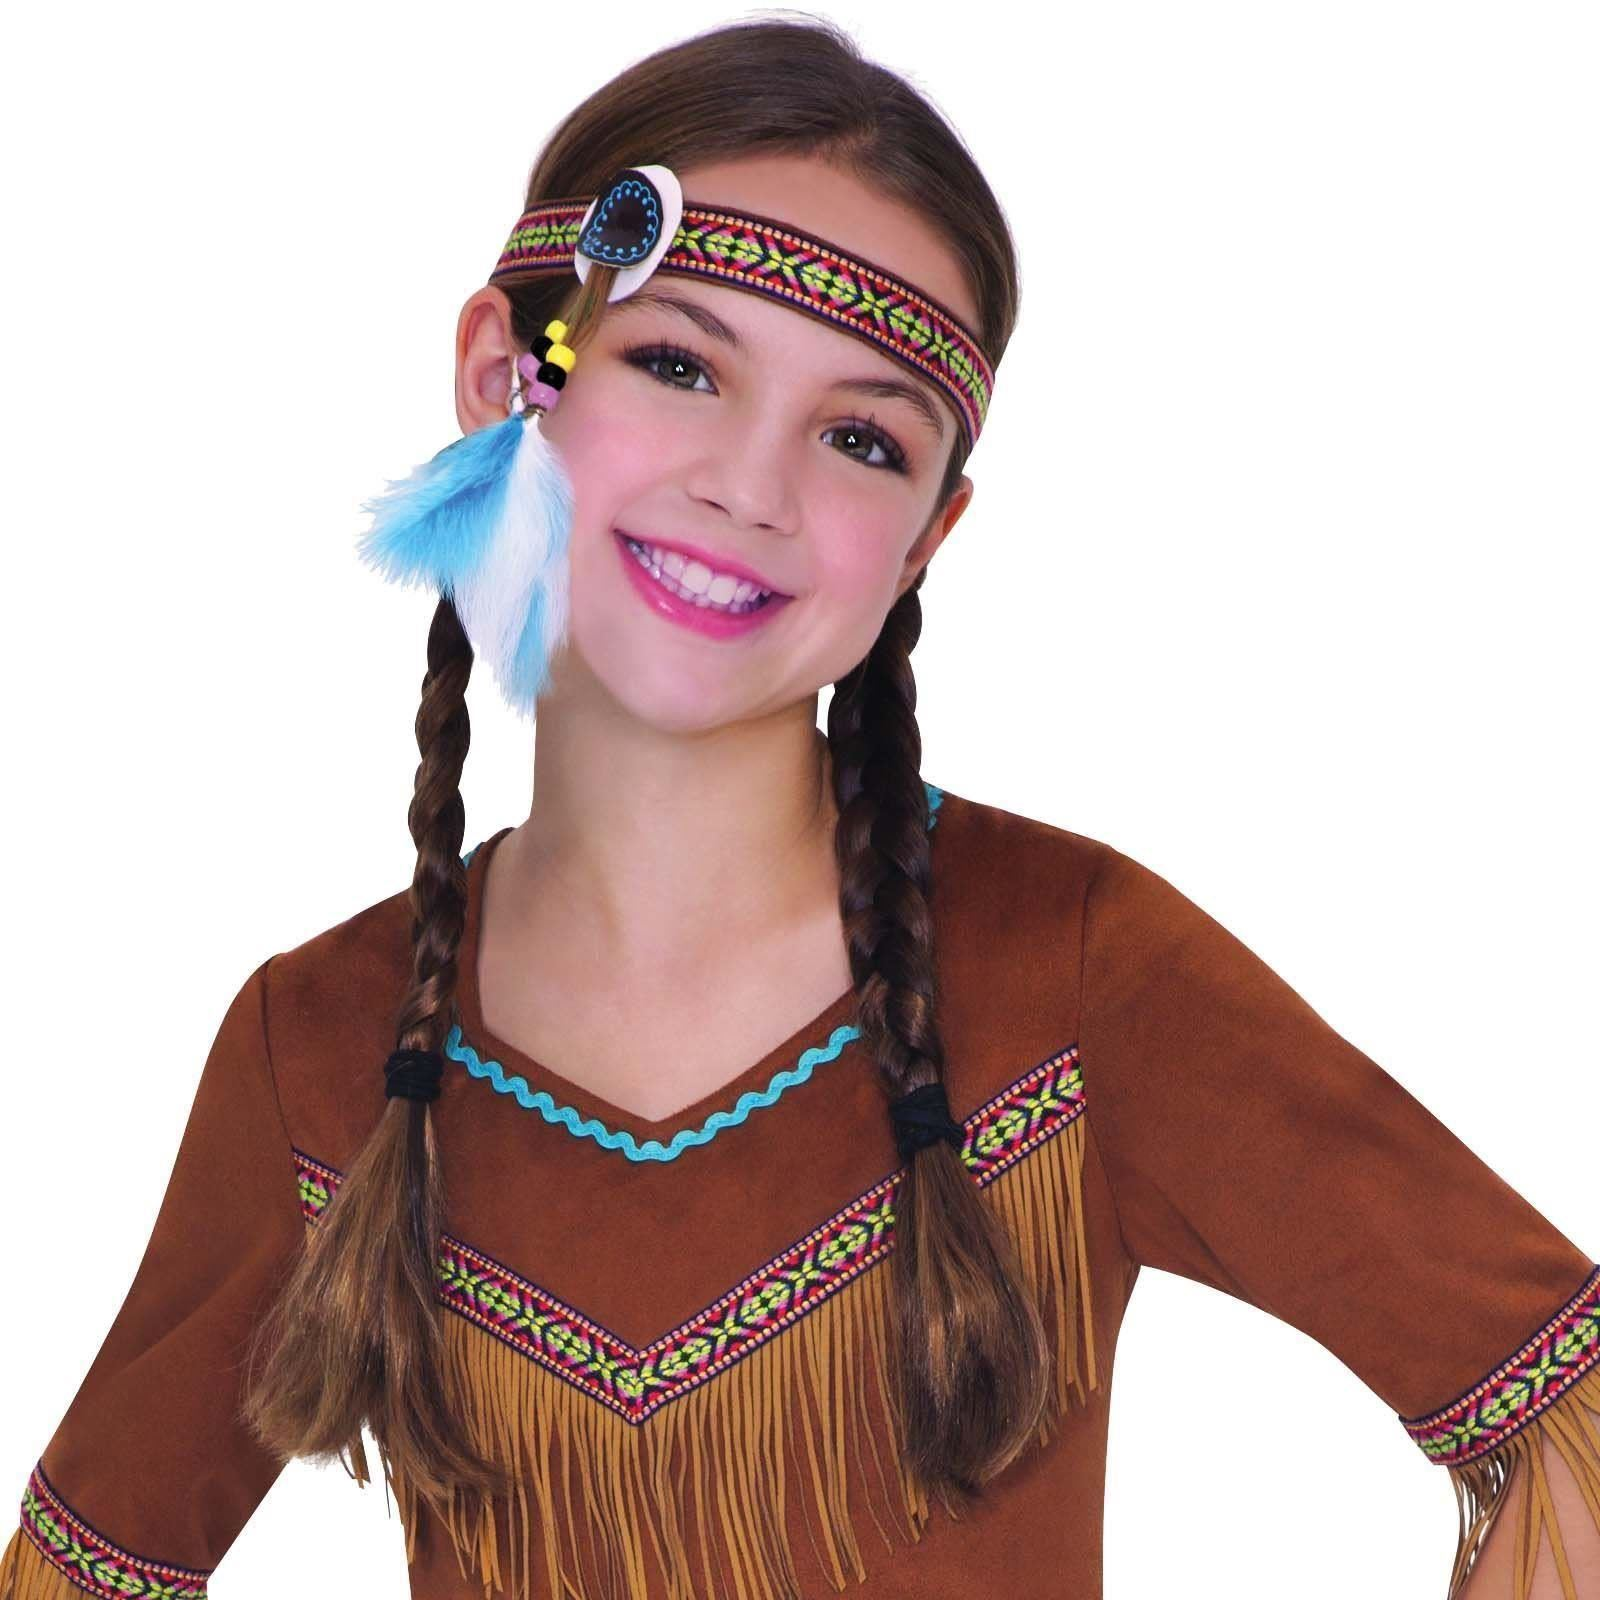 Book Week Pan Tiger Lily Red Indian Native Fancy Dress Costume Girls Childrens | eBay  sc 1 st  eBay & Book Week Pan Tiger Lily Red Indian Native Fancy Dress Costume Girls ...